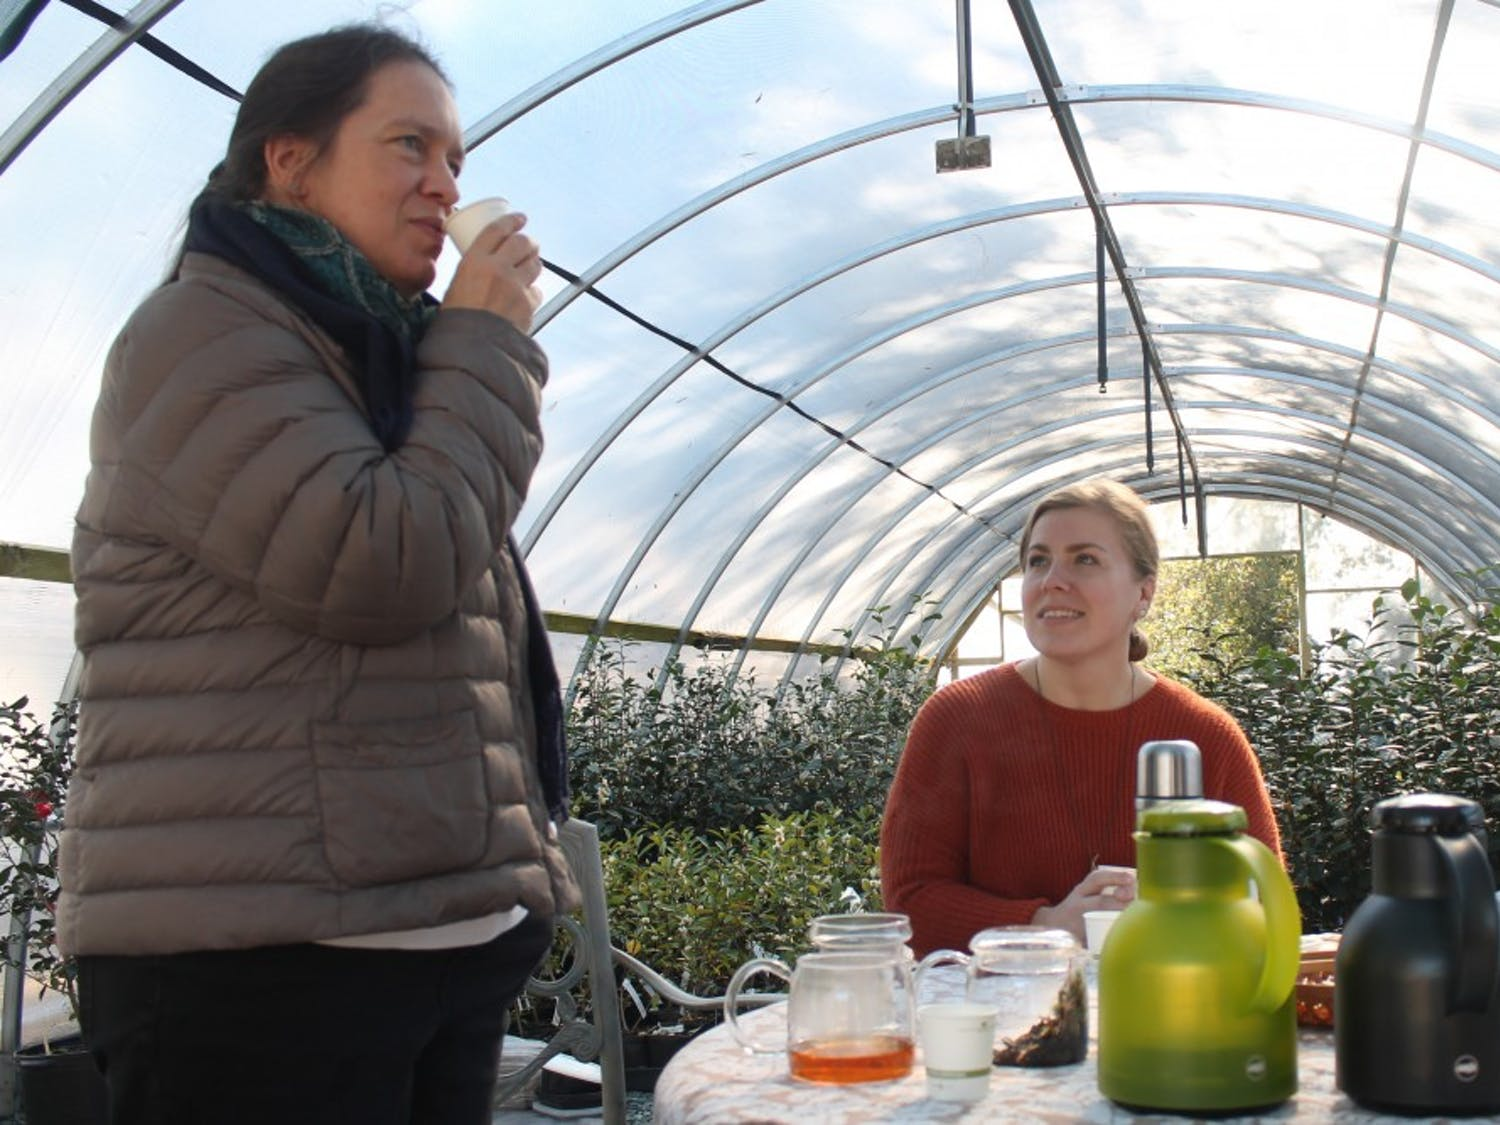 """(From left to right) Local artisan Christine Parks and photographer Kathy Hampton sample some of the tea they sold at the """"Meet the Makers"""" event held at Camellia Forest Nursery on Saturday, Nov. 17, 2018."""